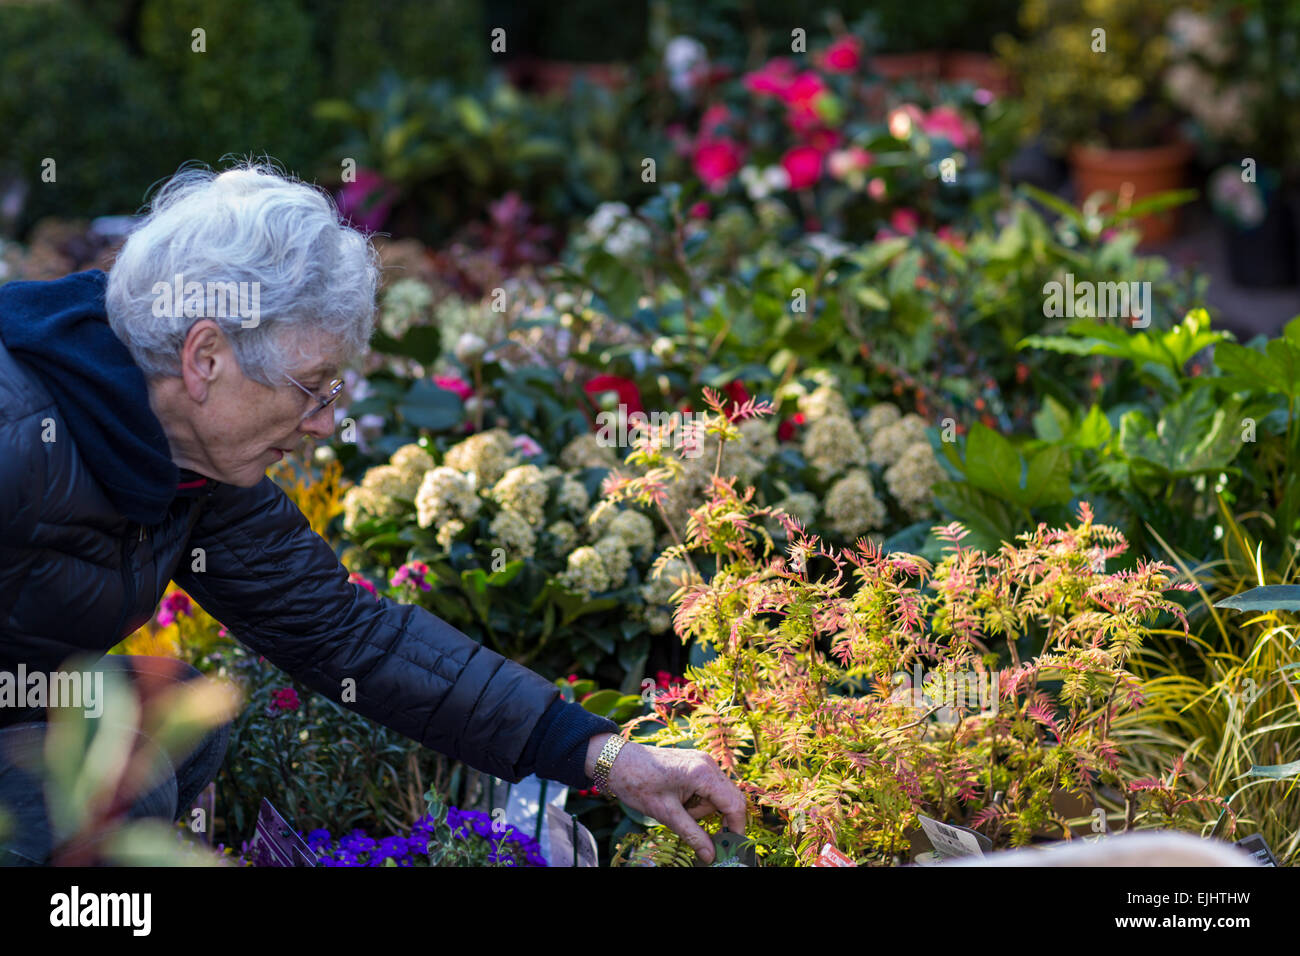 Stalls and flowers at Columbia Road Flower Market, London, England - Stock Image